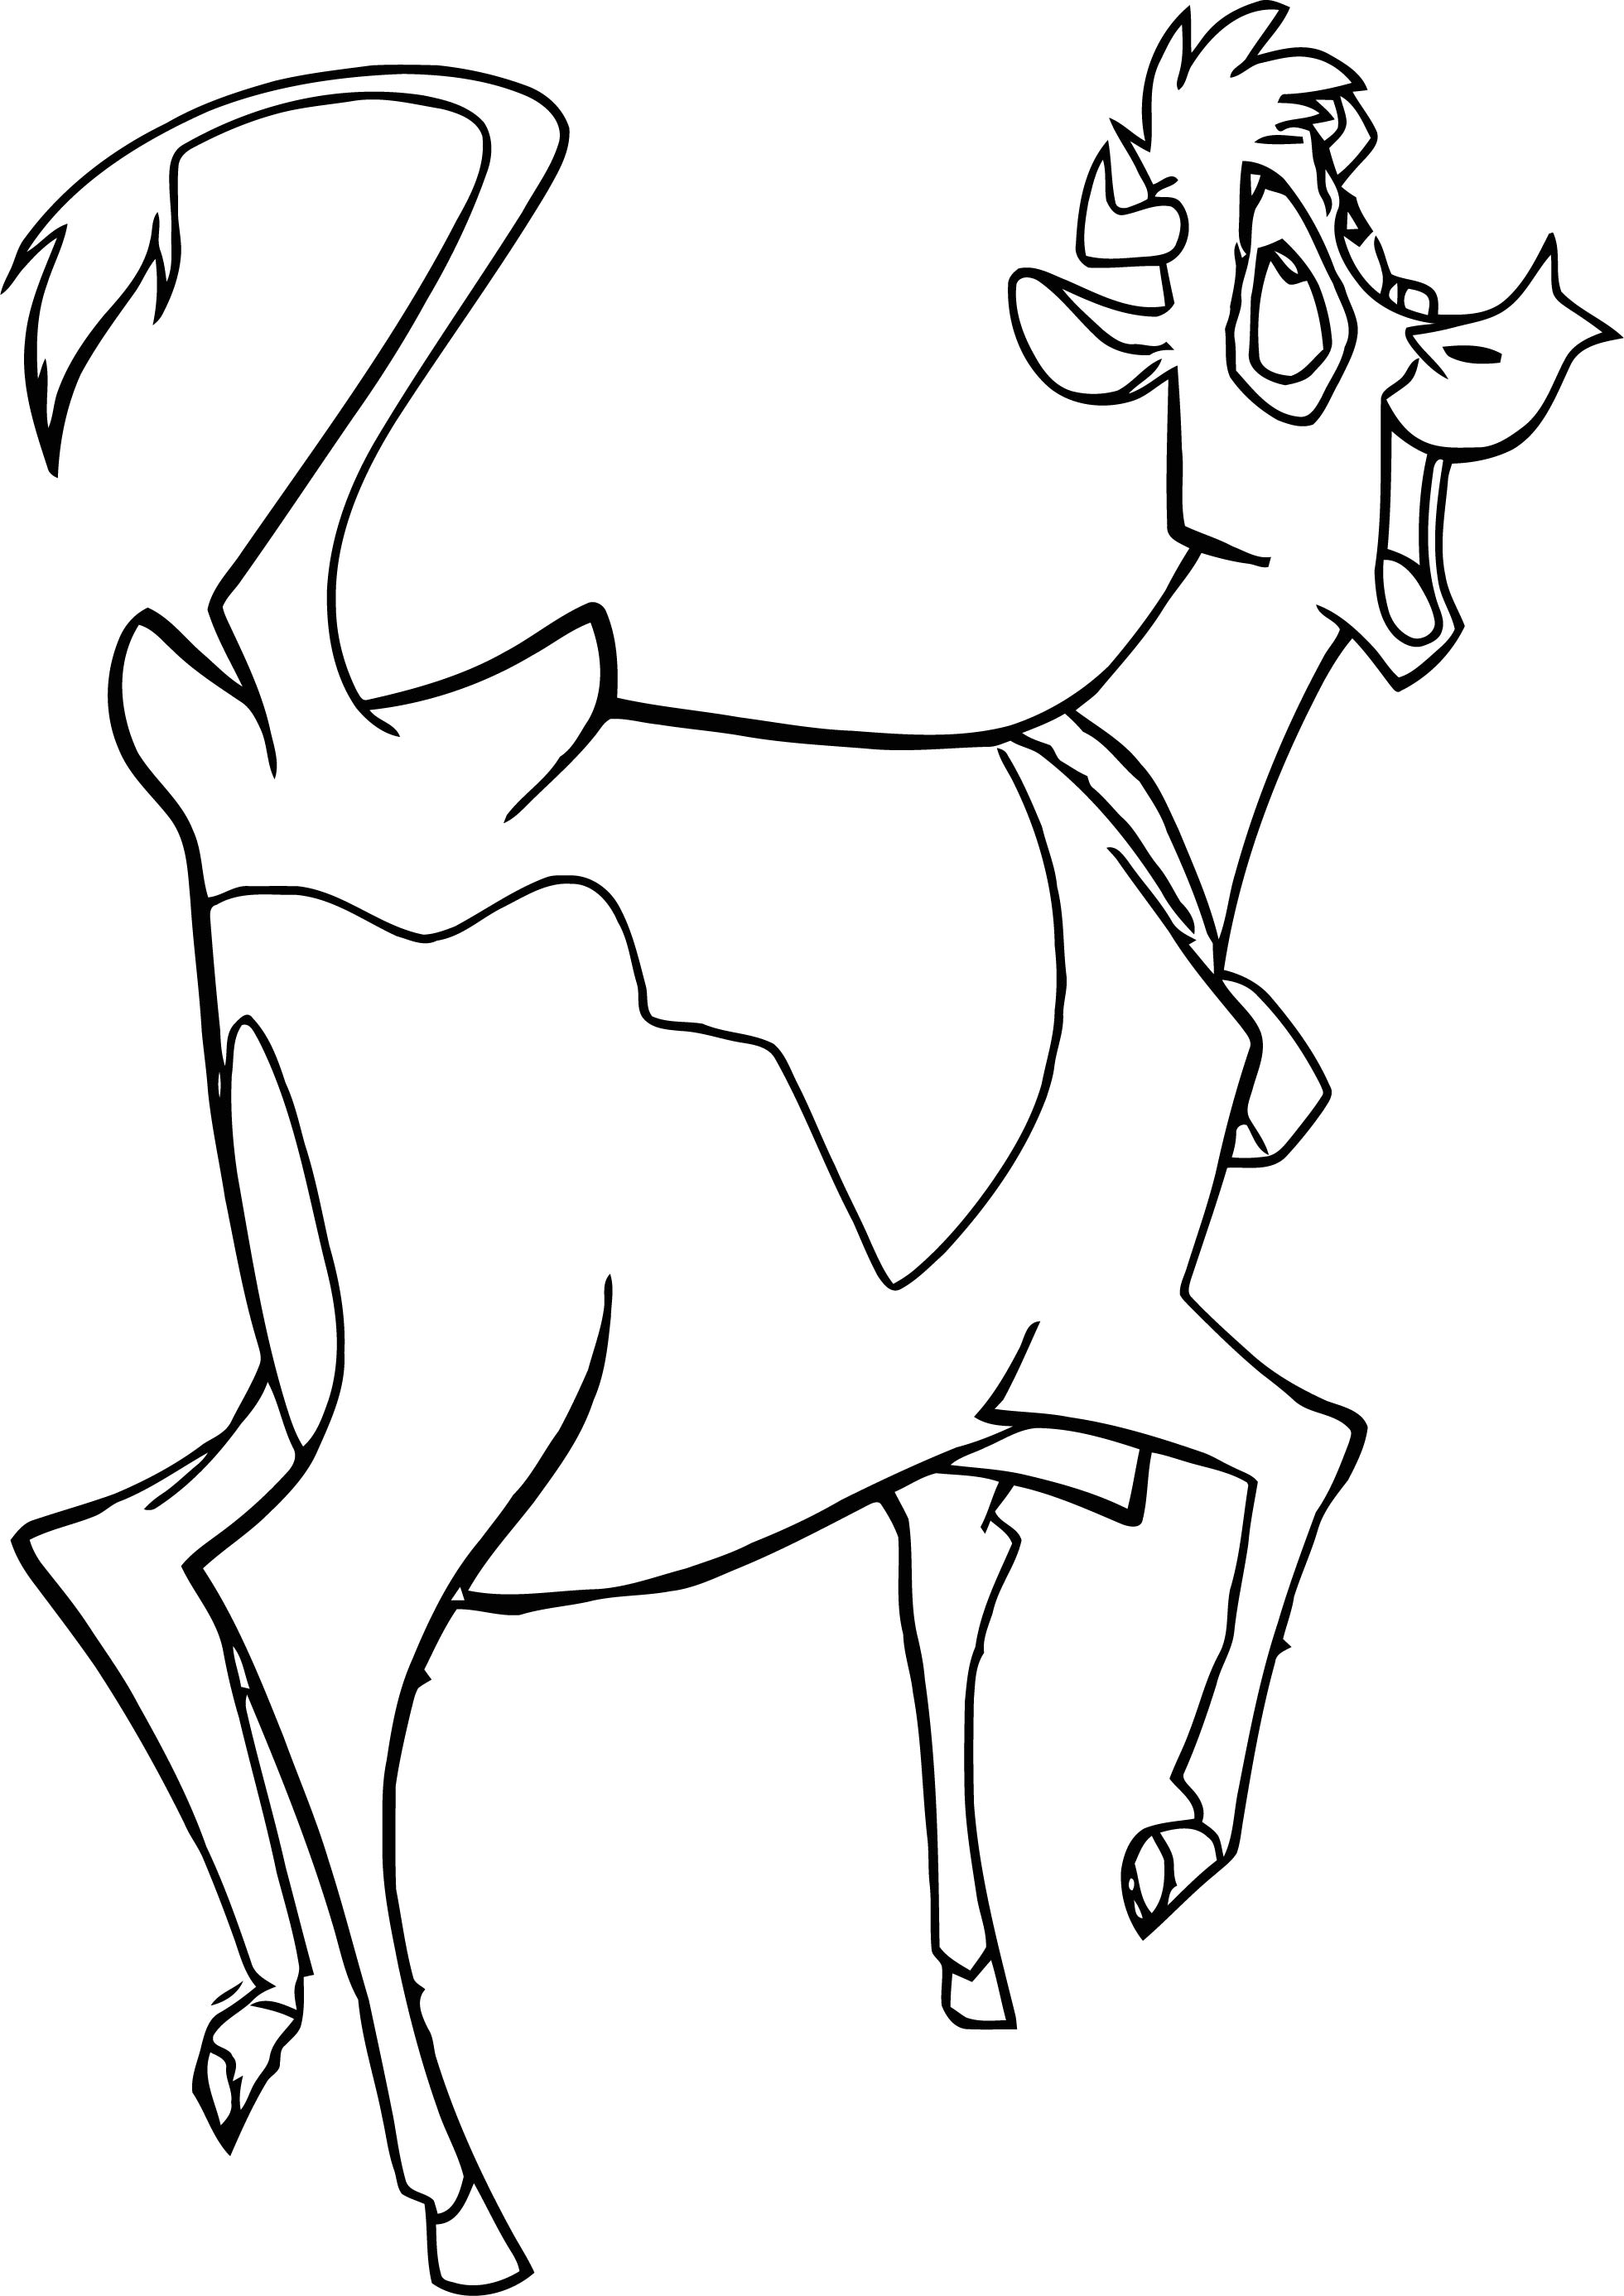 Home On The Range Fun Cow Coloring Page